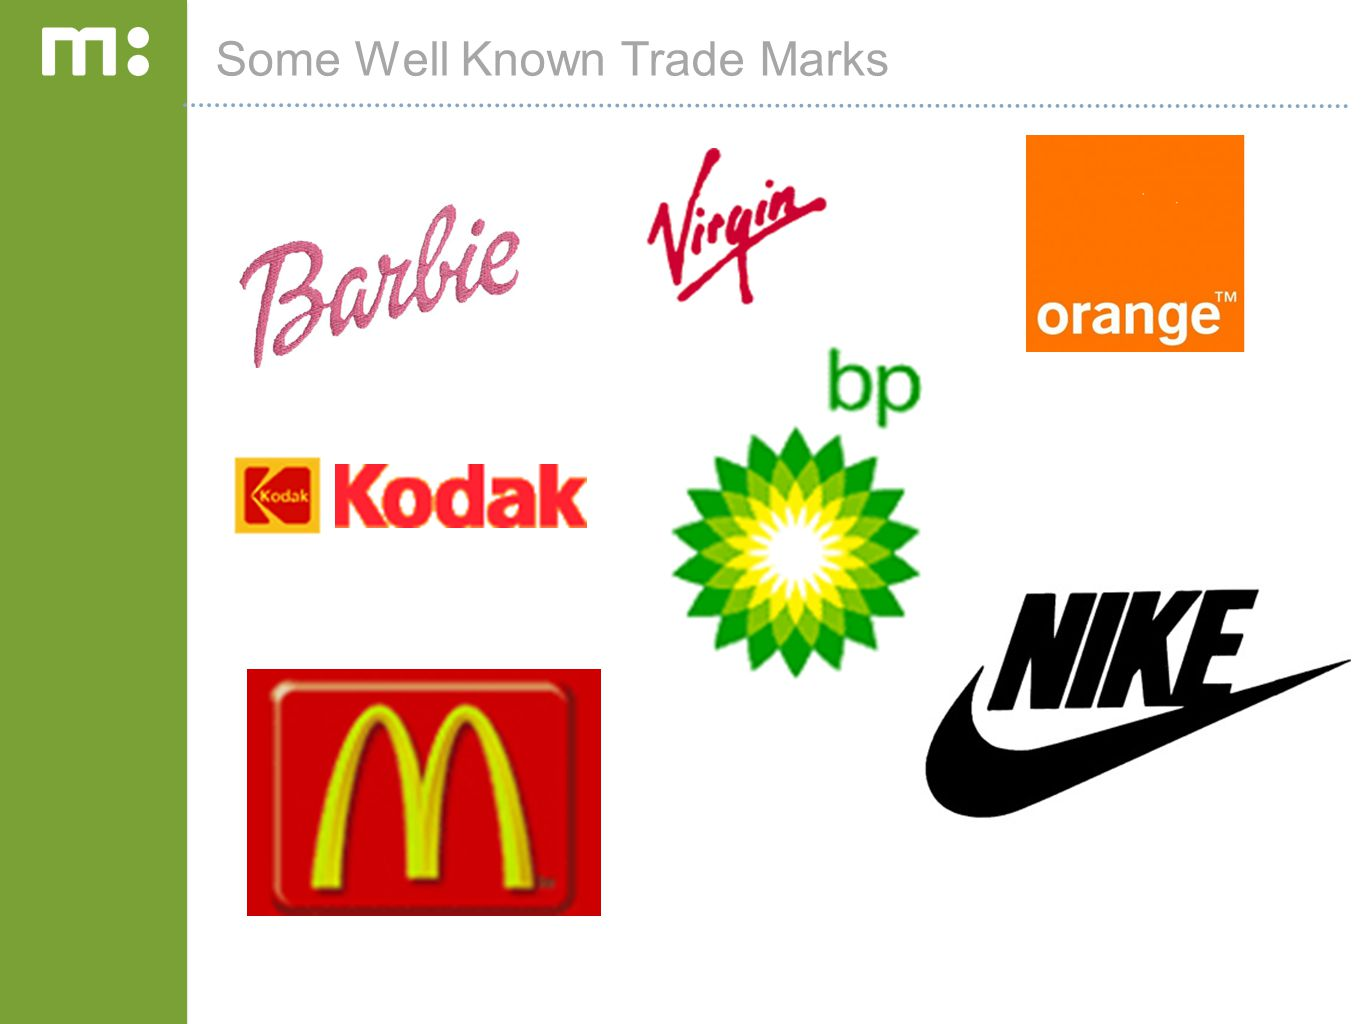 Some Well Known Trade Marks